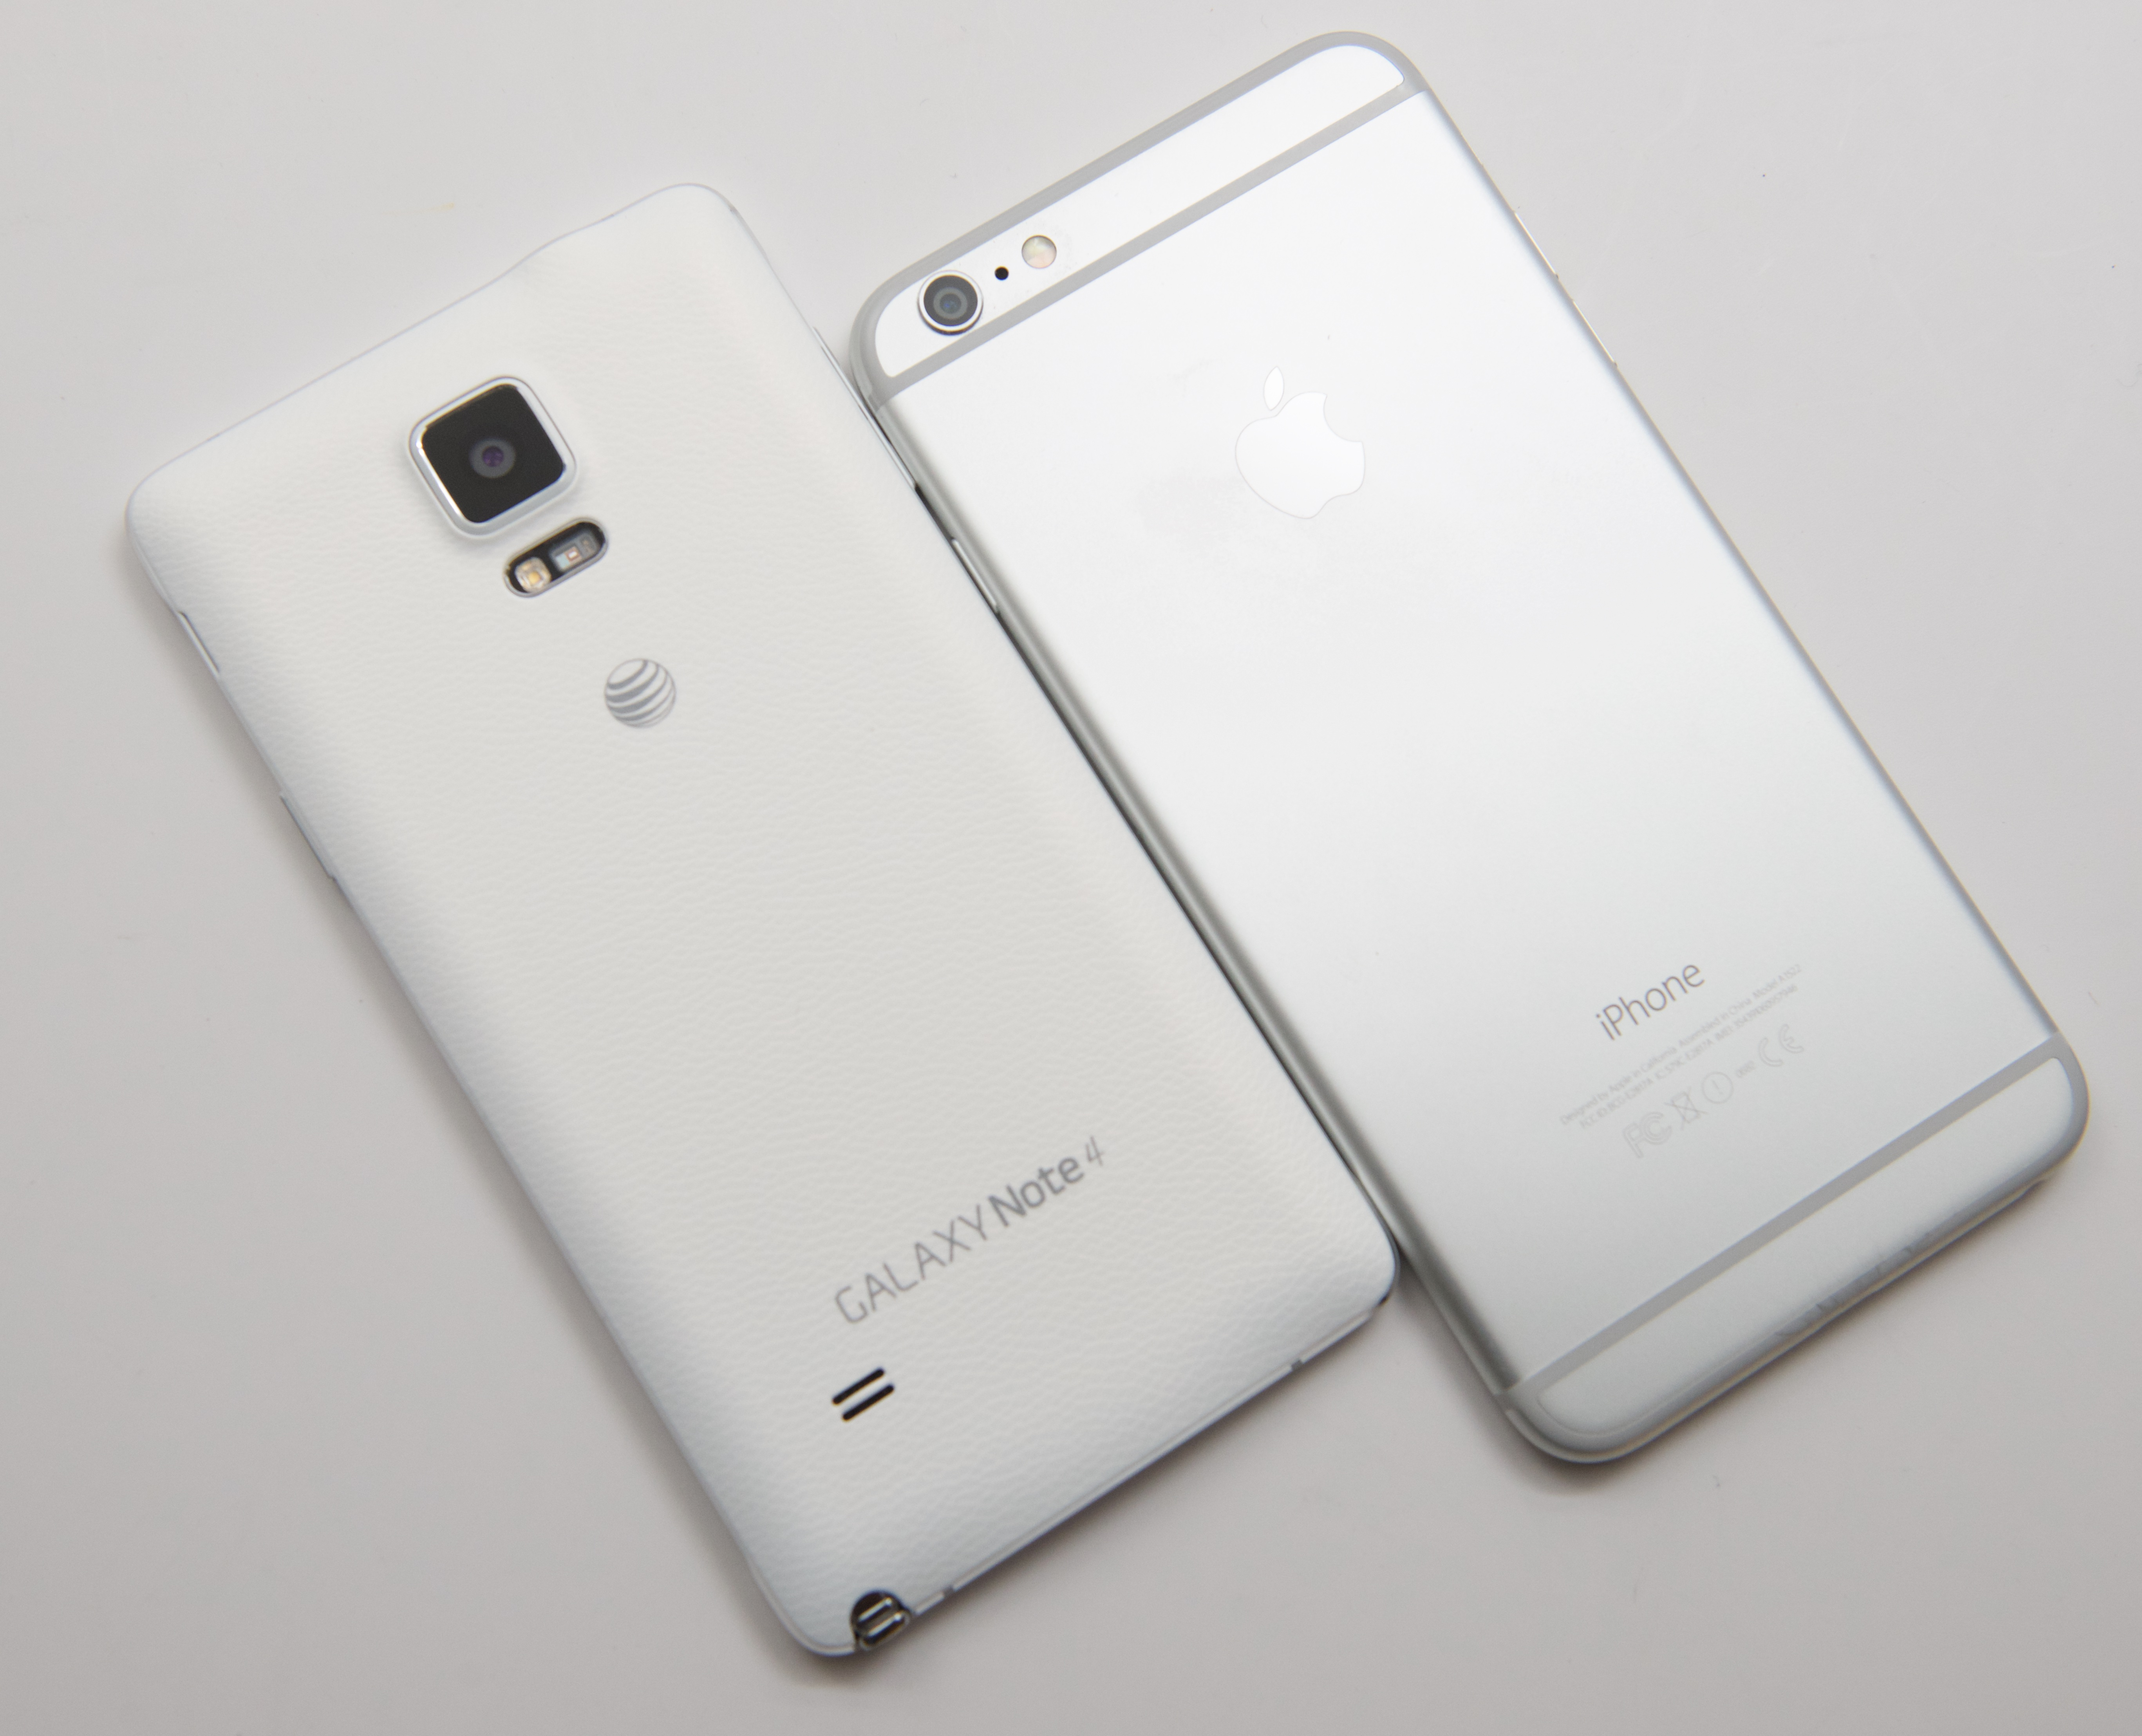 Galaxy Note 4 Bredvid iPhone 6 Plus